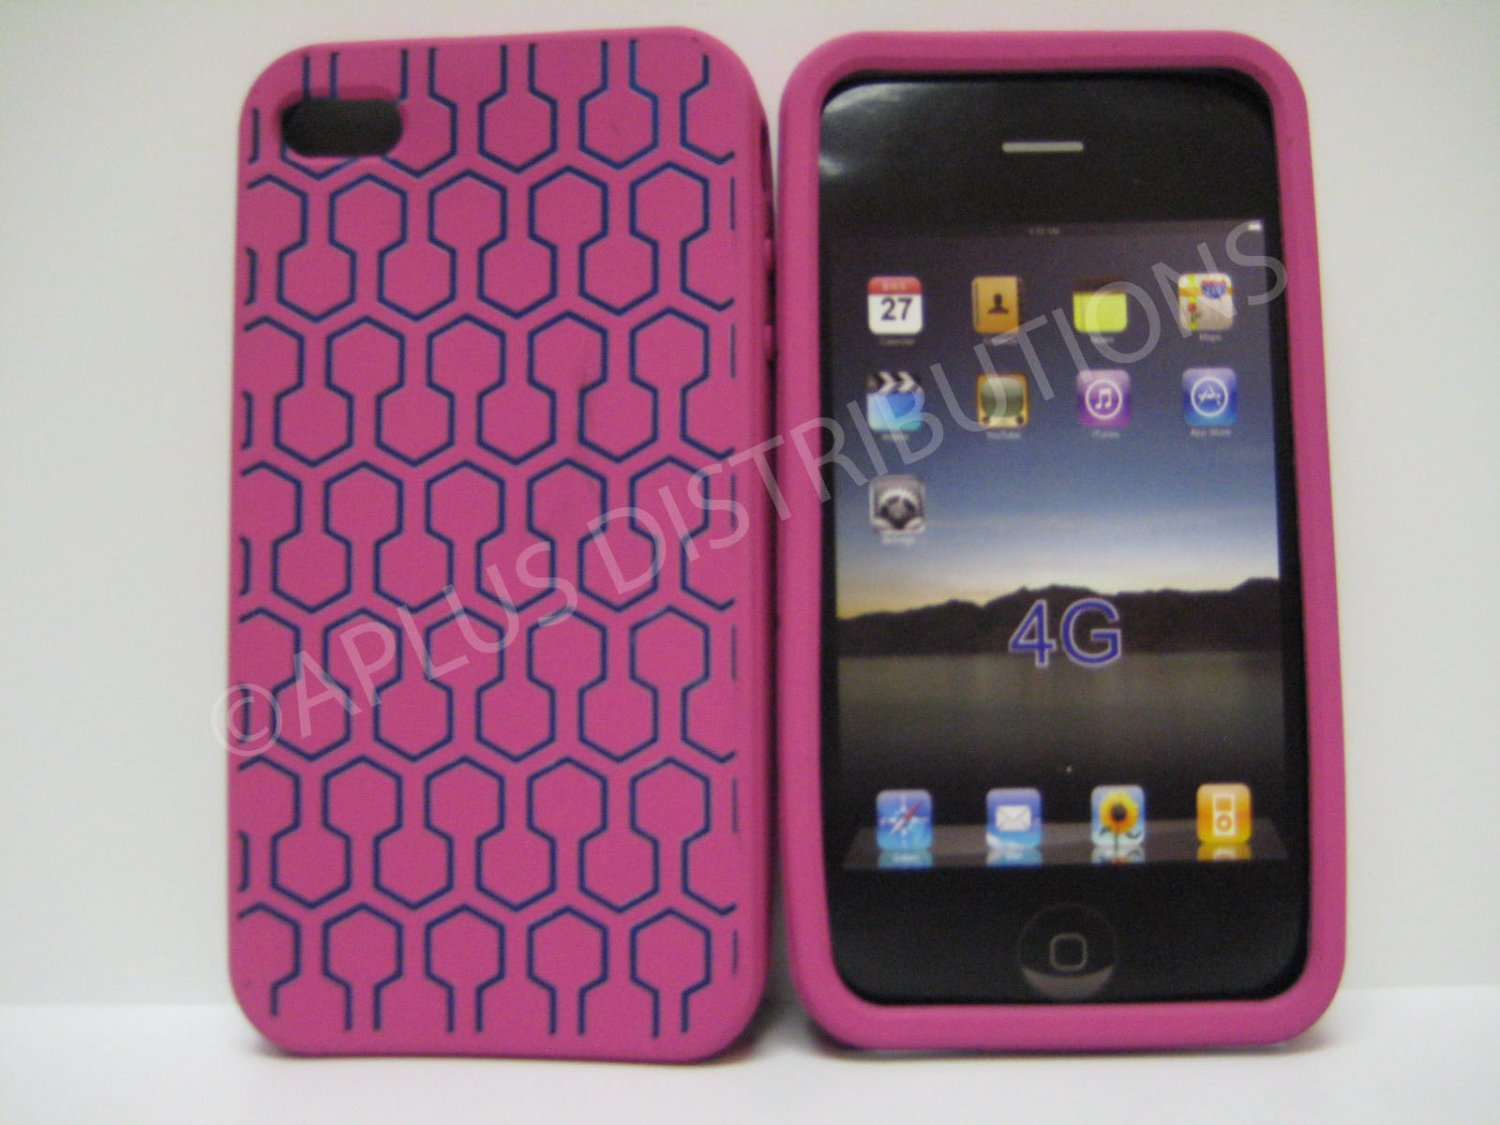 New Pink Honey Comb Pattern Silicone Cover For iPhone 4 - (0103)